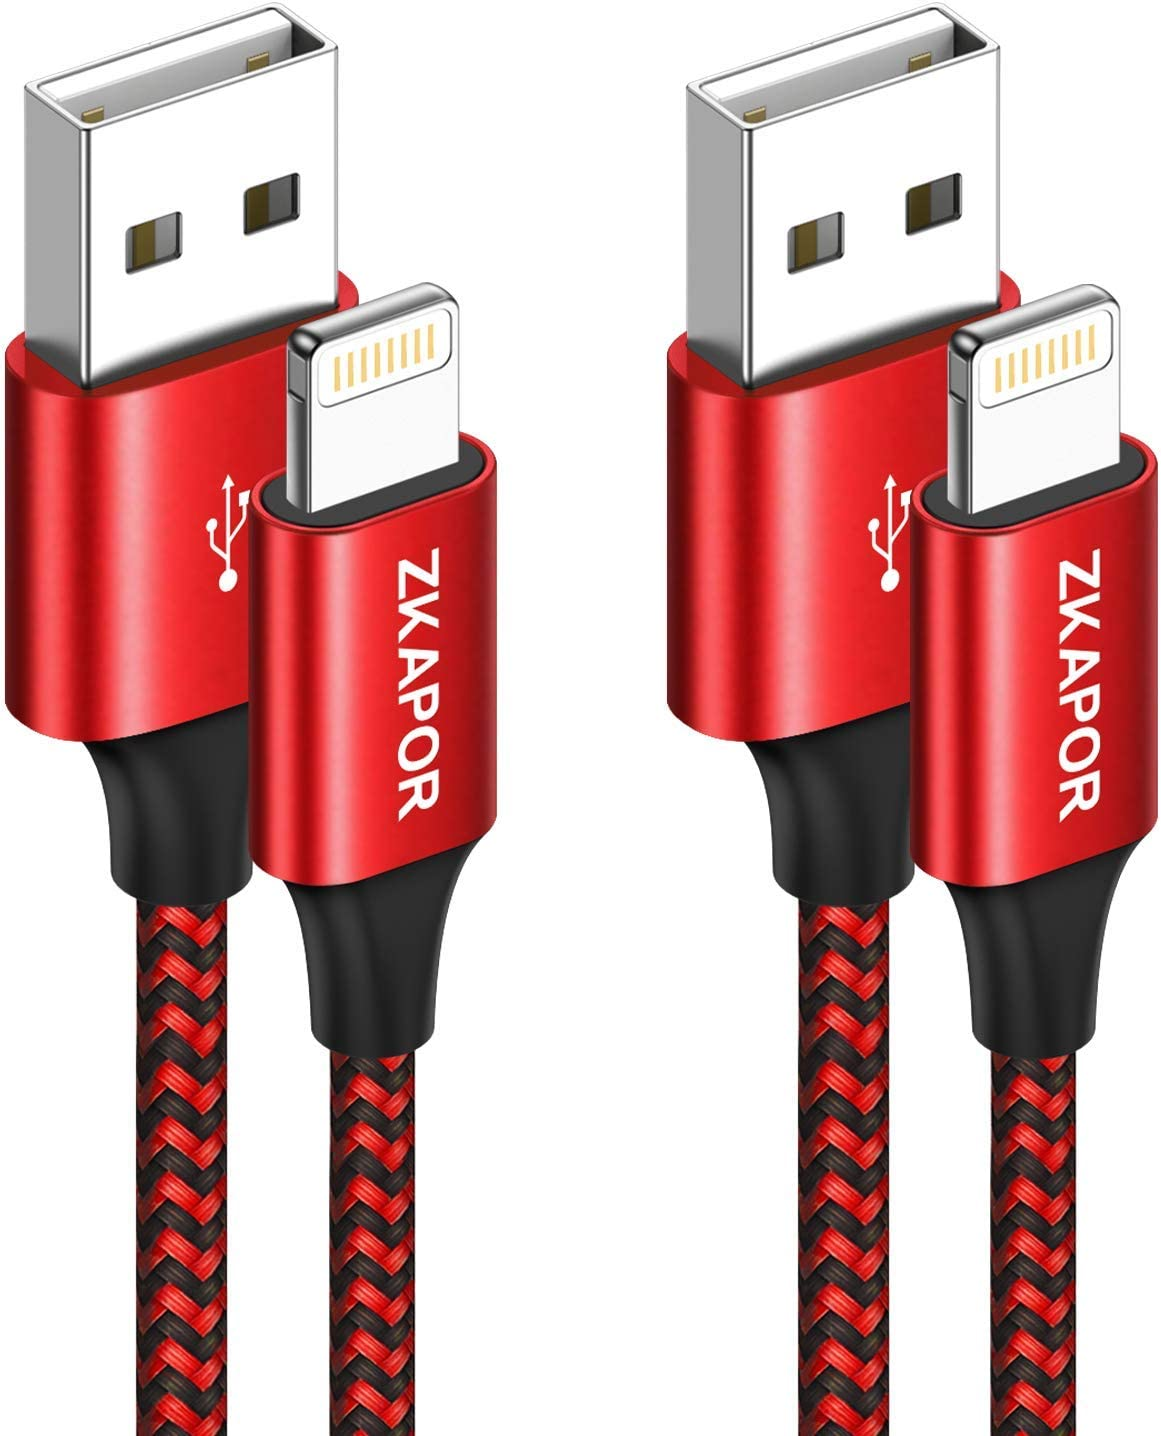 ZKAPOR Cable iPhone Cable Lightning [2Pack 2M] Cargador iPhone Carga Rápida Trenzado de Nylon Compatible con Apple iPhone 11 Pro XS MAX XR X 8 Plus 7 Plus 6S 6 Plus 5 5S 5C SE, iPad-Rojo